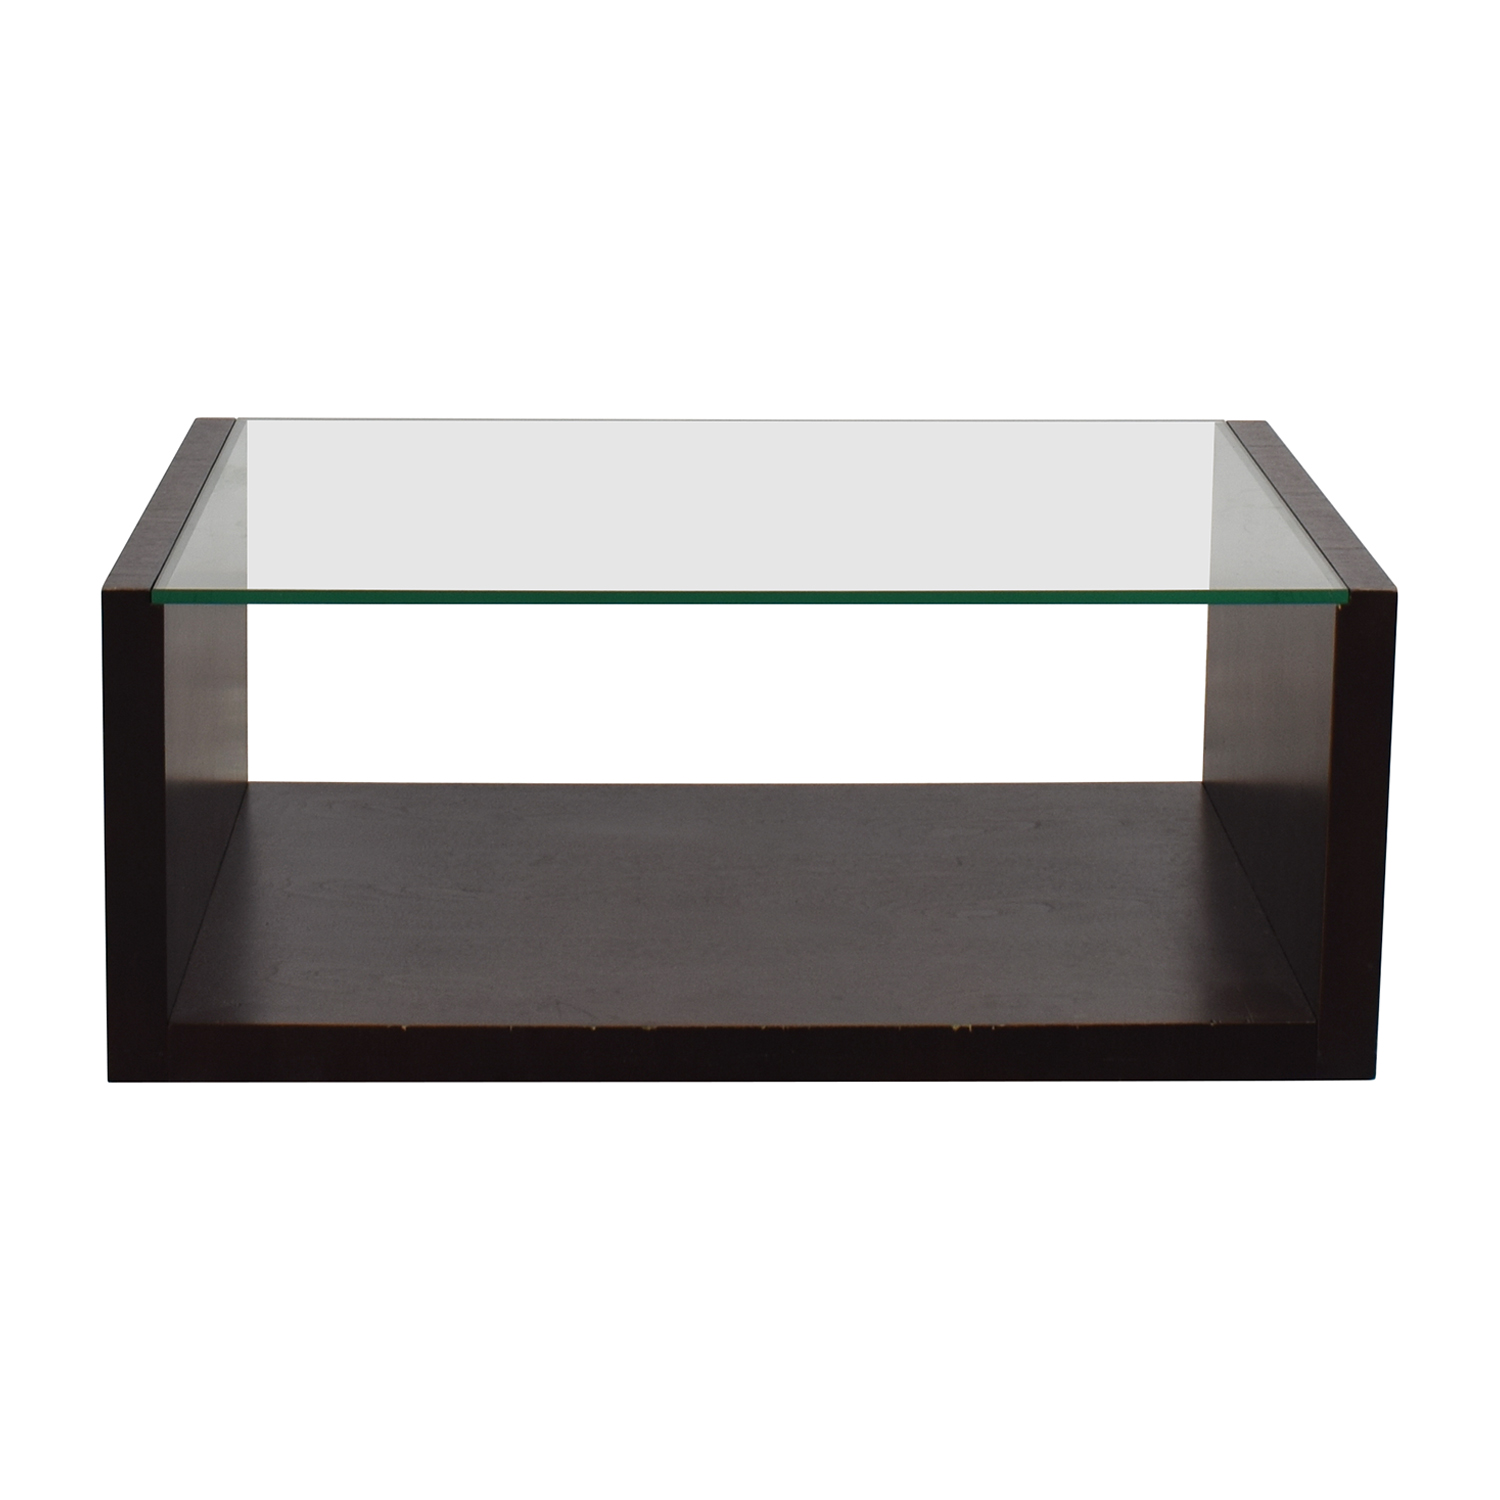 shop Crate & Barrel Glass Coffee Table Crate & Barrel Coffee Tables